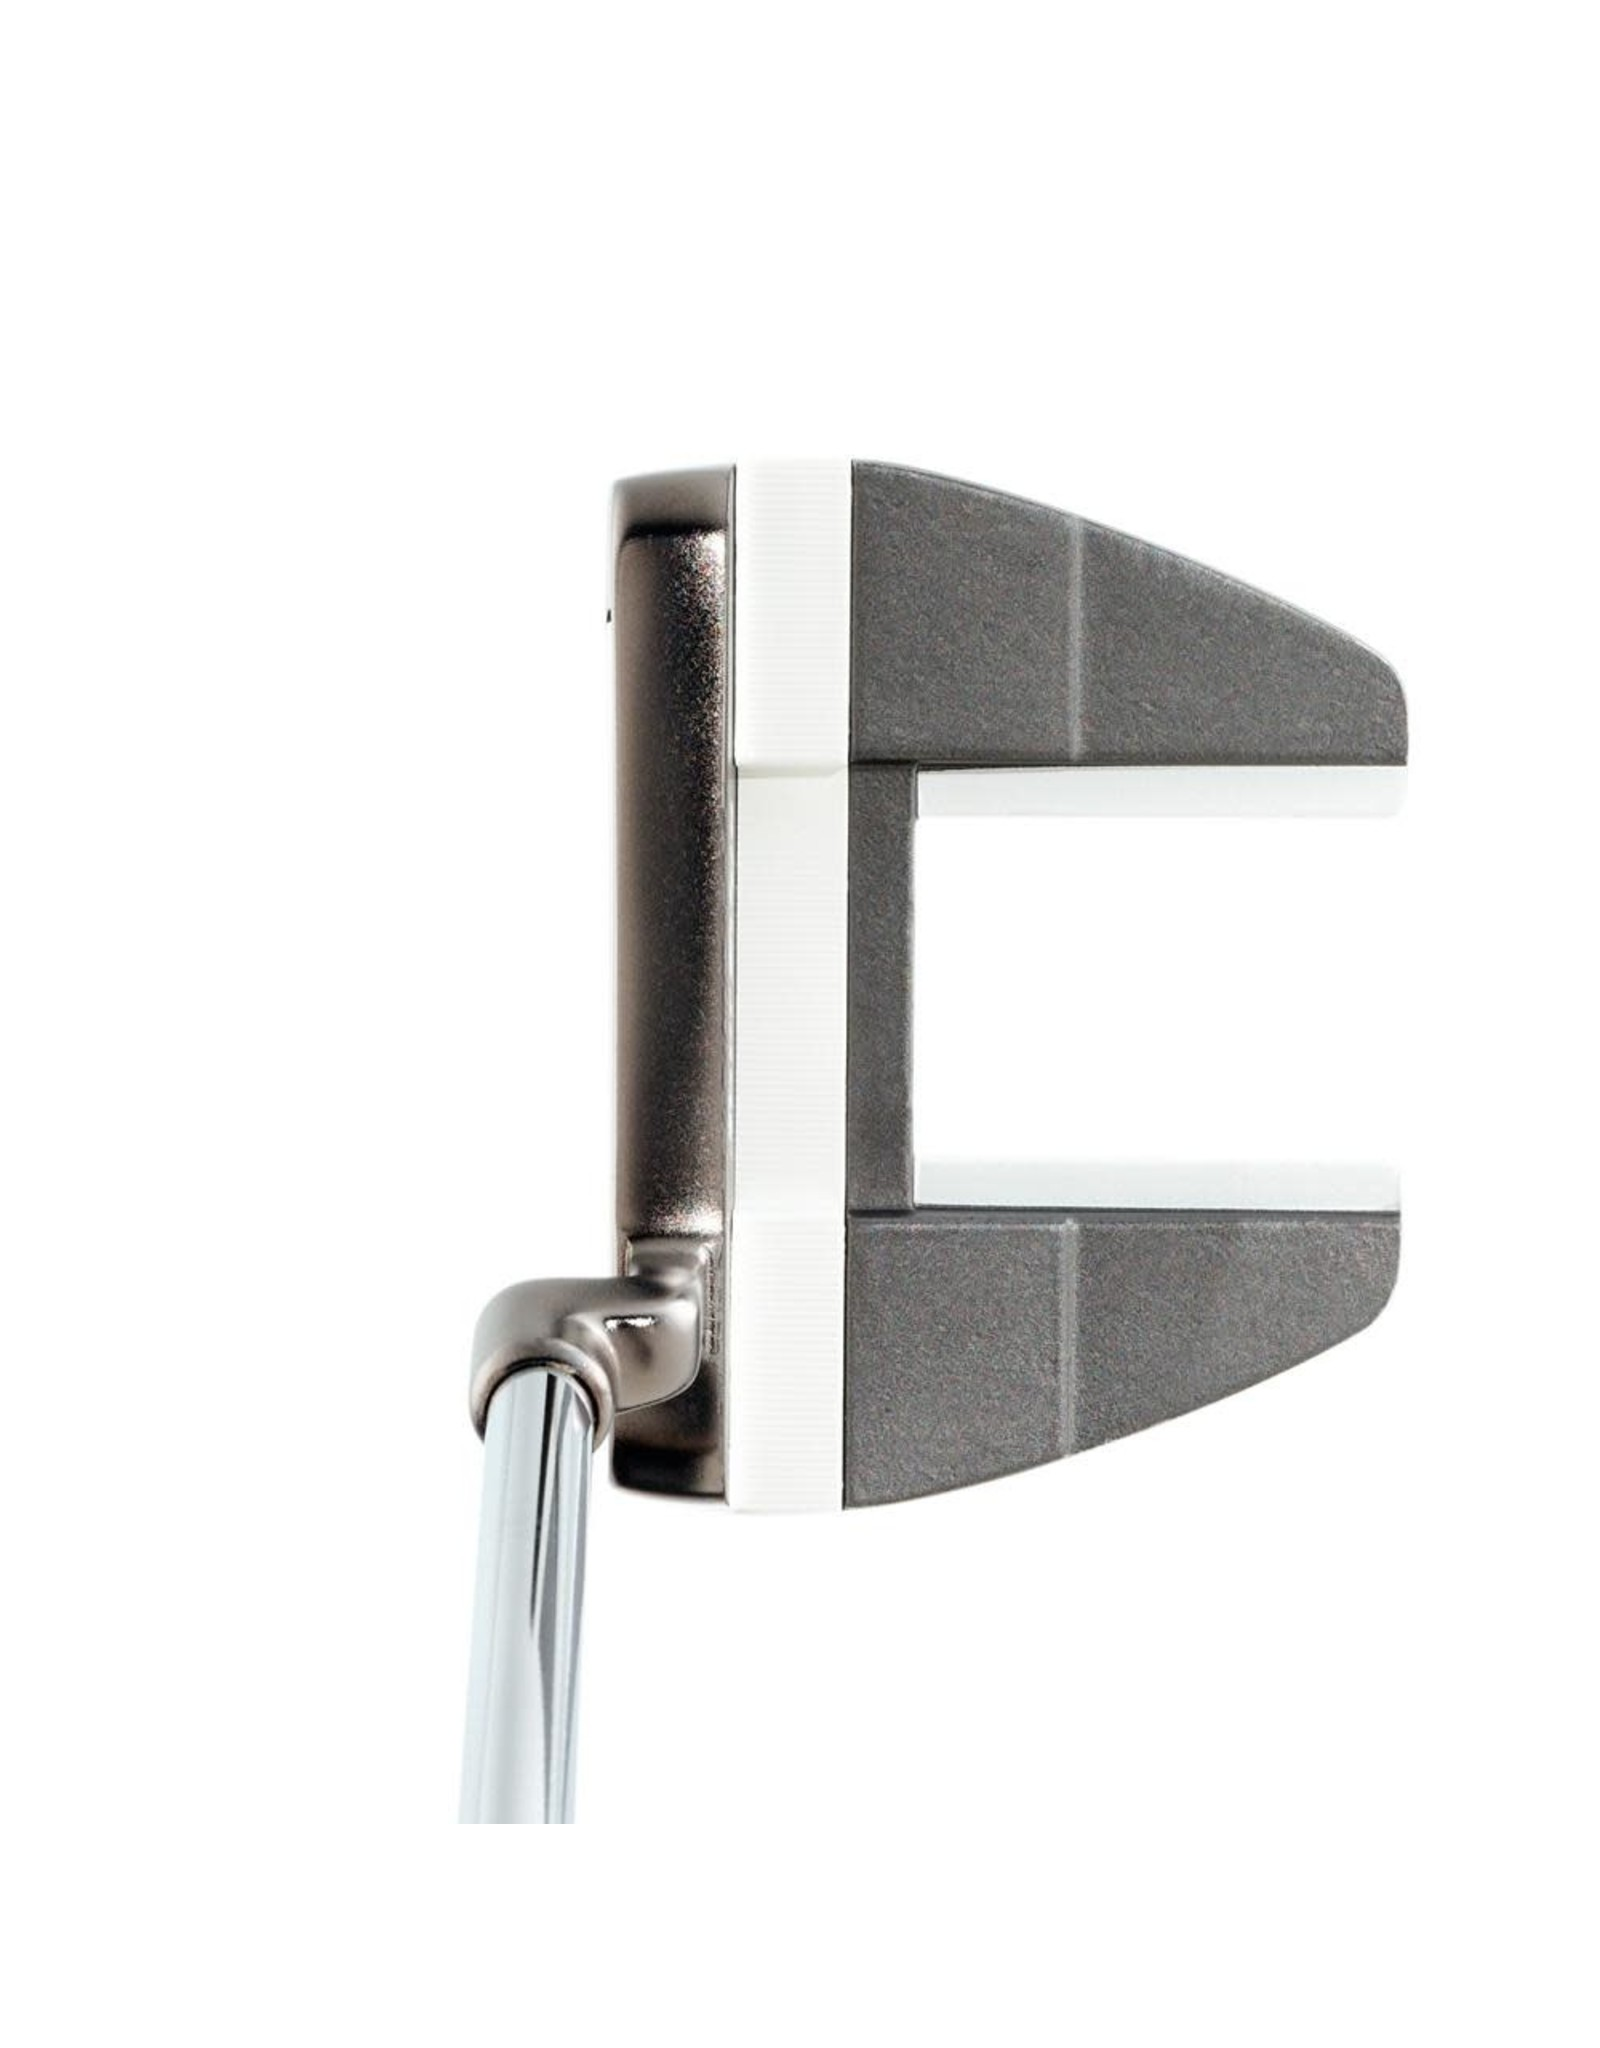 Tour edge/ exotic Tour Edge HP Series Putters